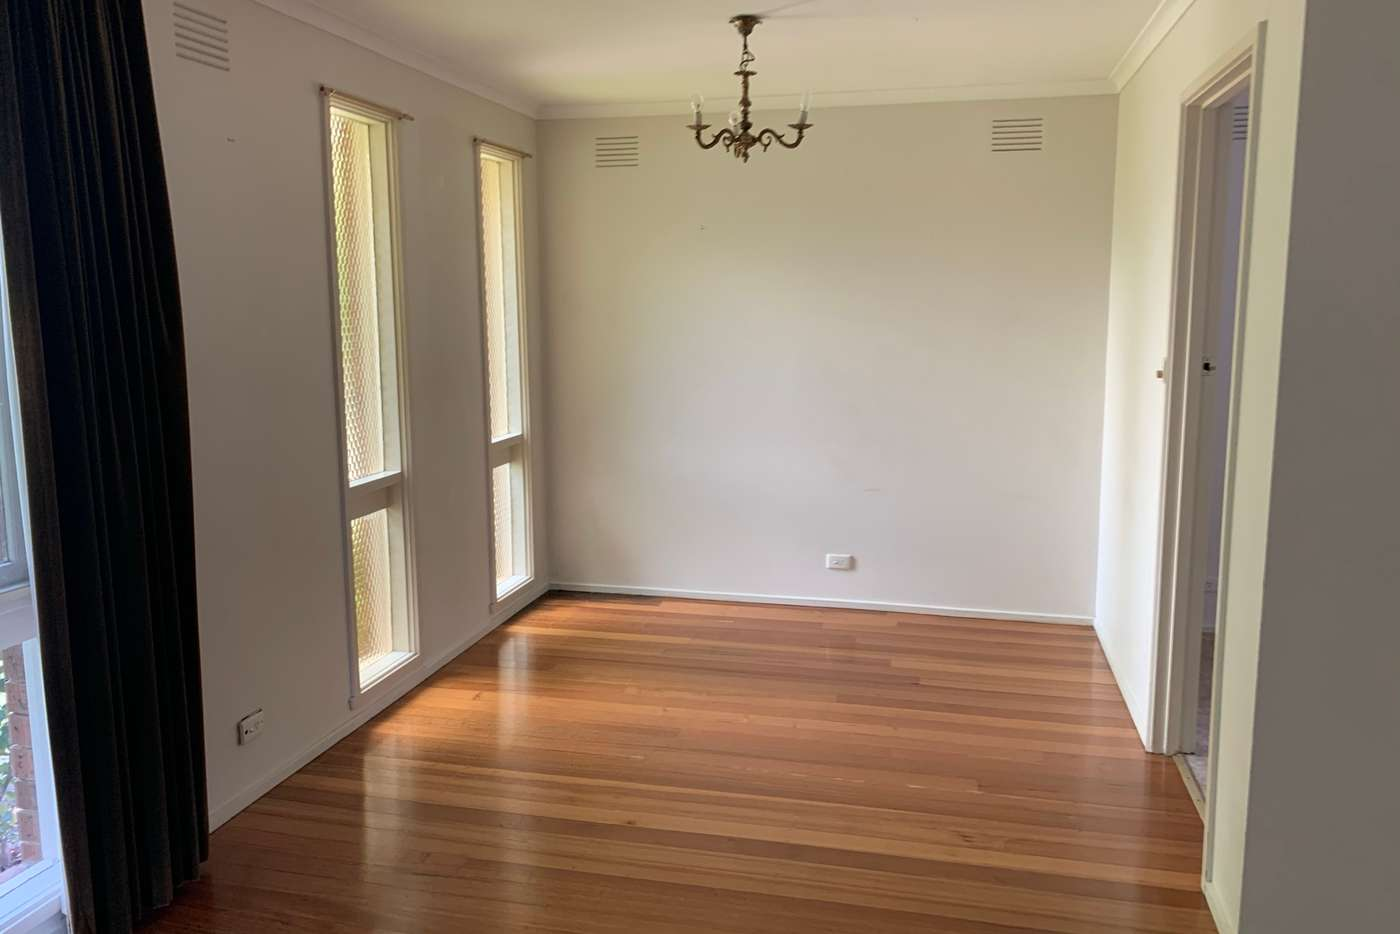 Sixth view of Homely house listing, 6/16-18 Suffolk Road, Surrey Hills VIC 3127